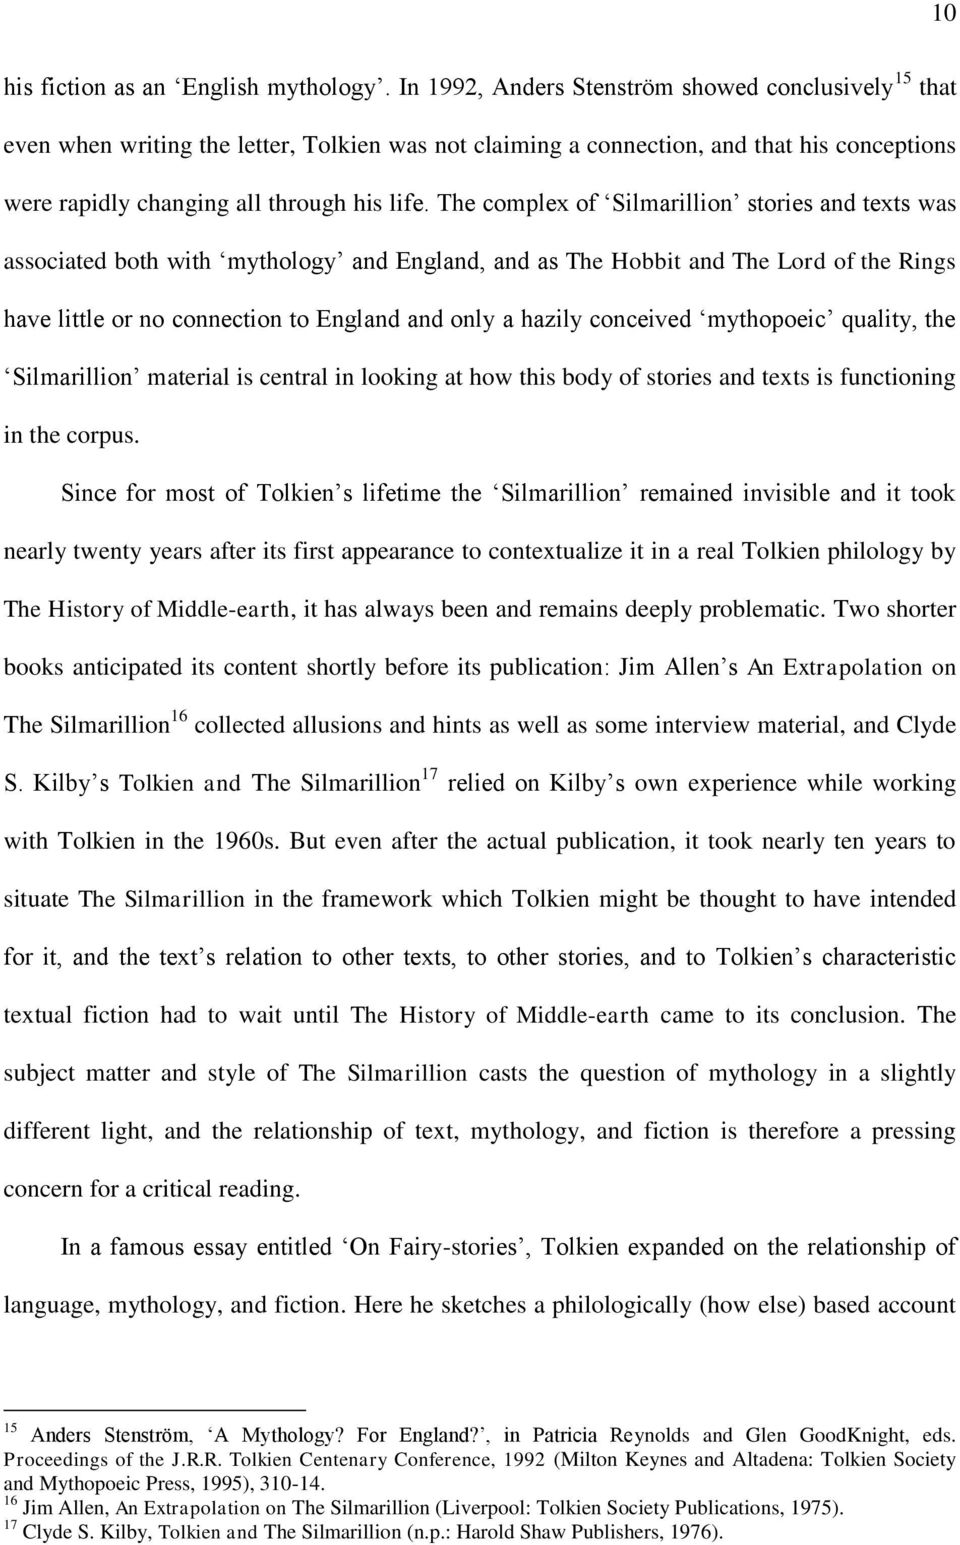 The complex of Silmarillion stories and texts was associated both with mythology and England, and as The Hobbit and The Lord of the Rings have little or no connection to England and only a hazily